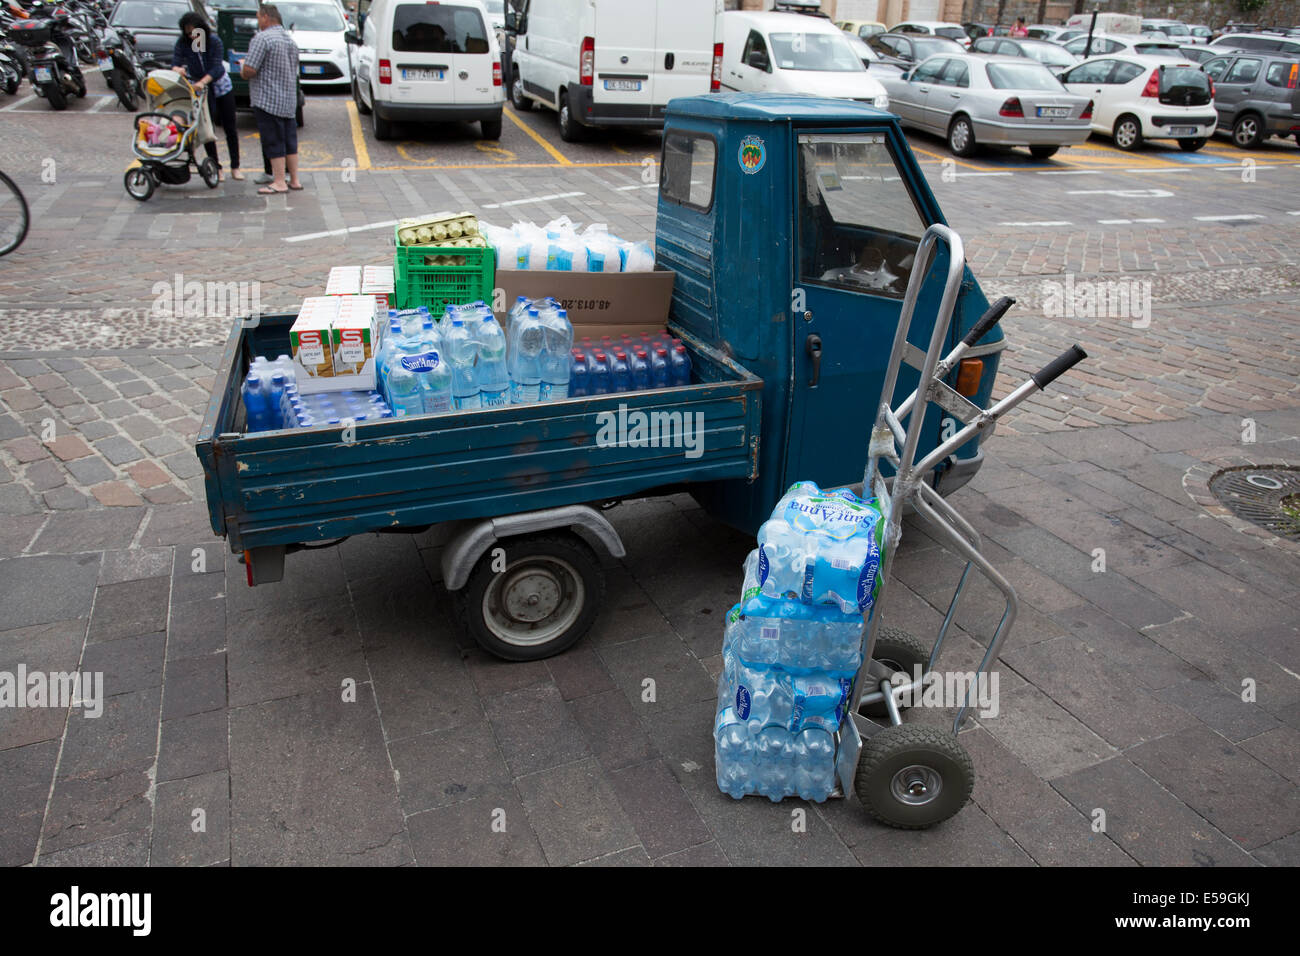 Three wheel truck delivers water in Malcesine, Italy - Stock Image